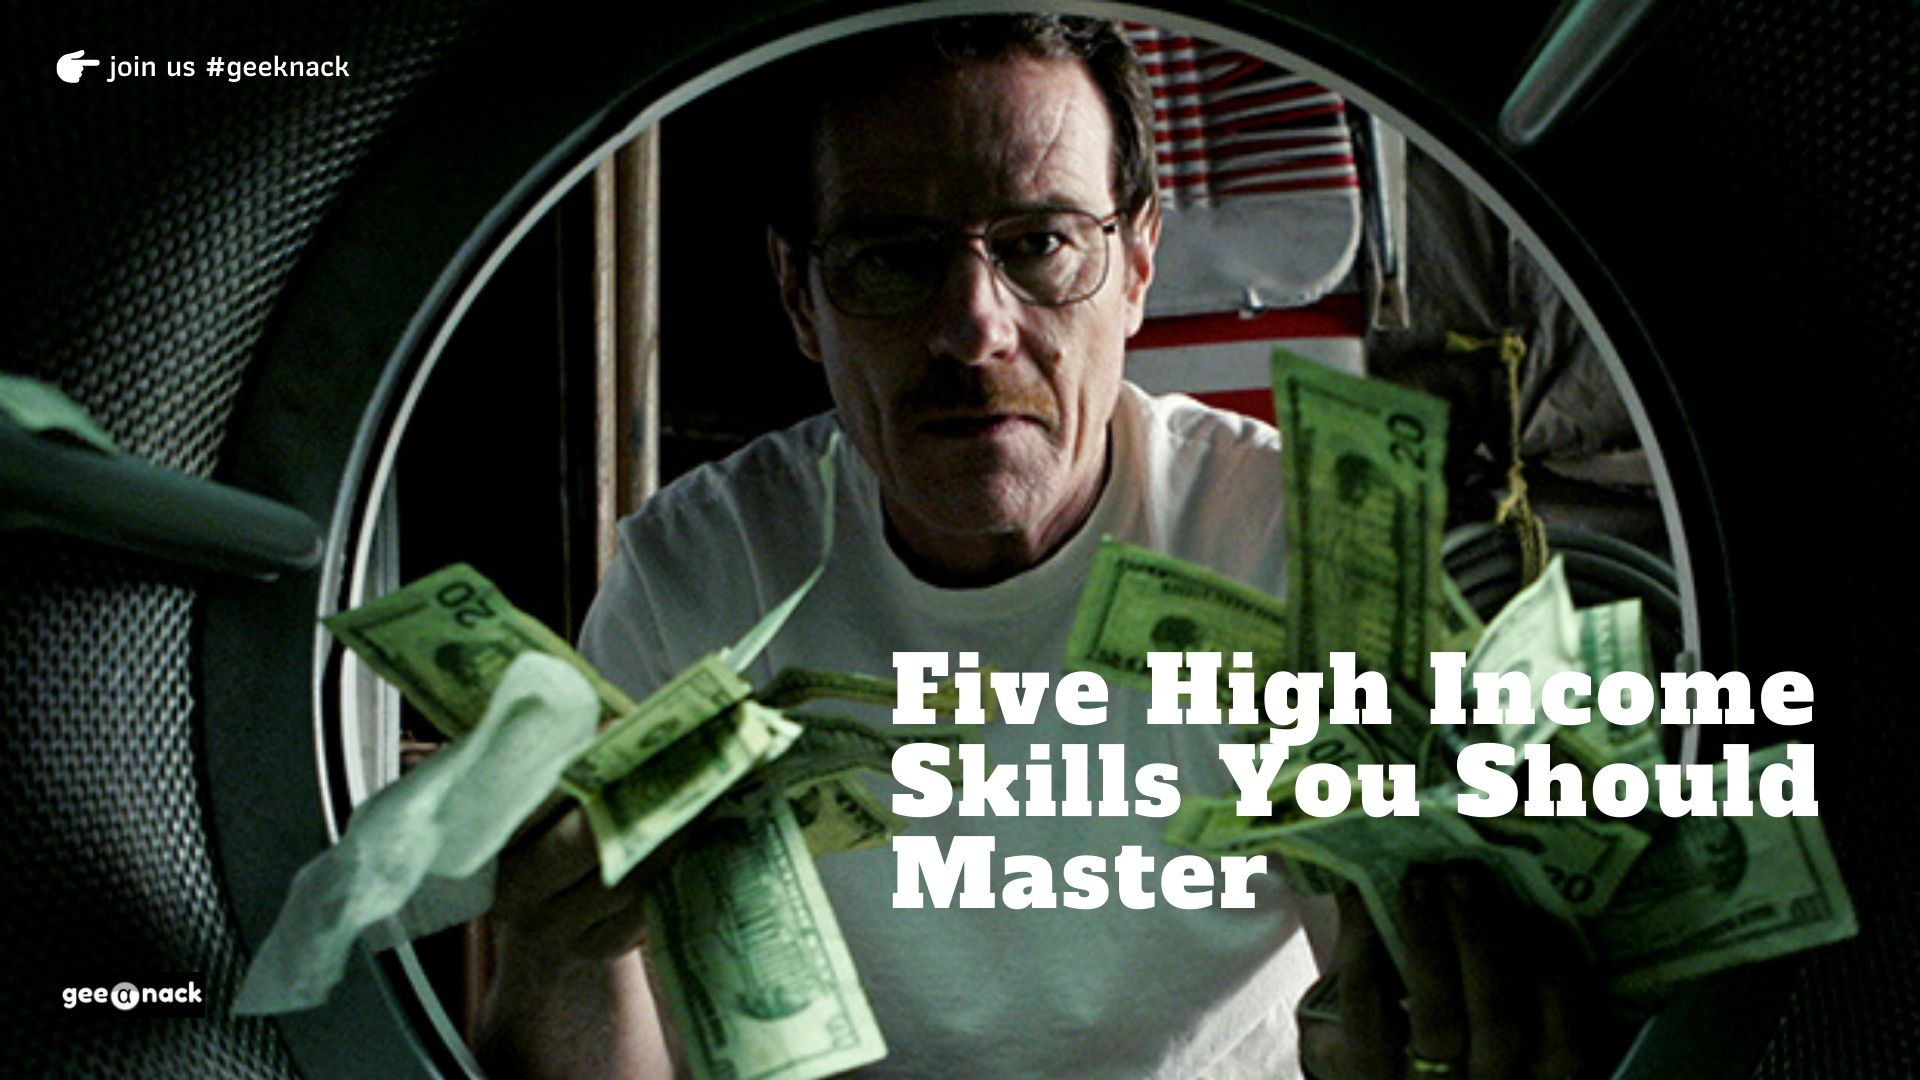 Five High Income Skills You Should Master